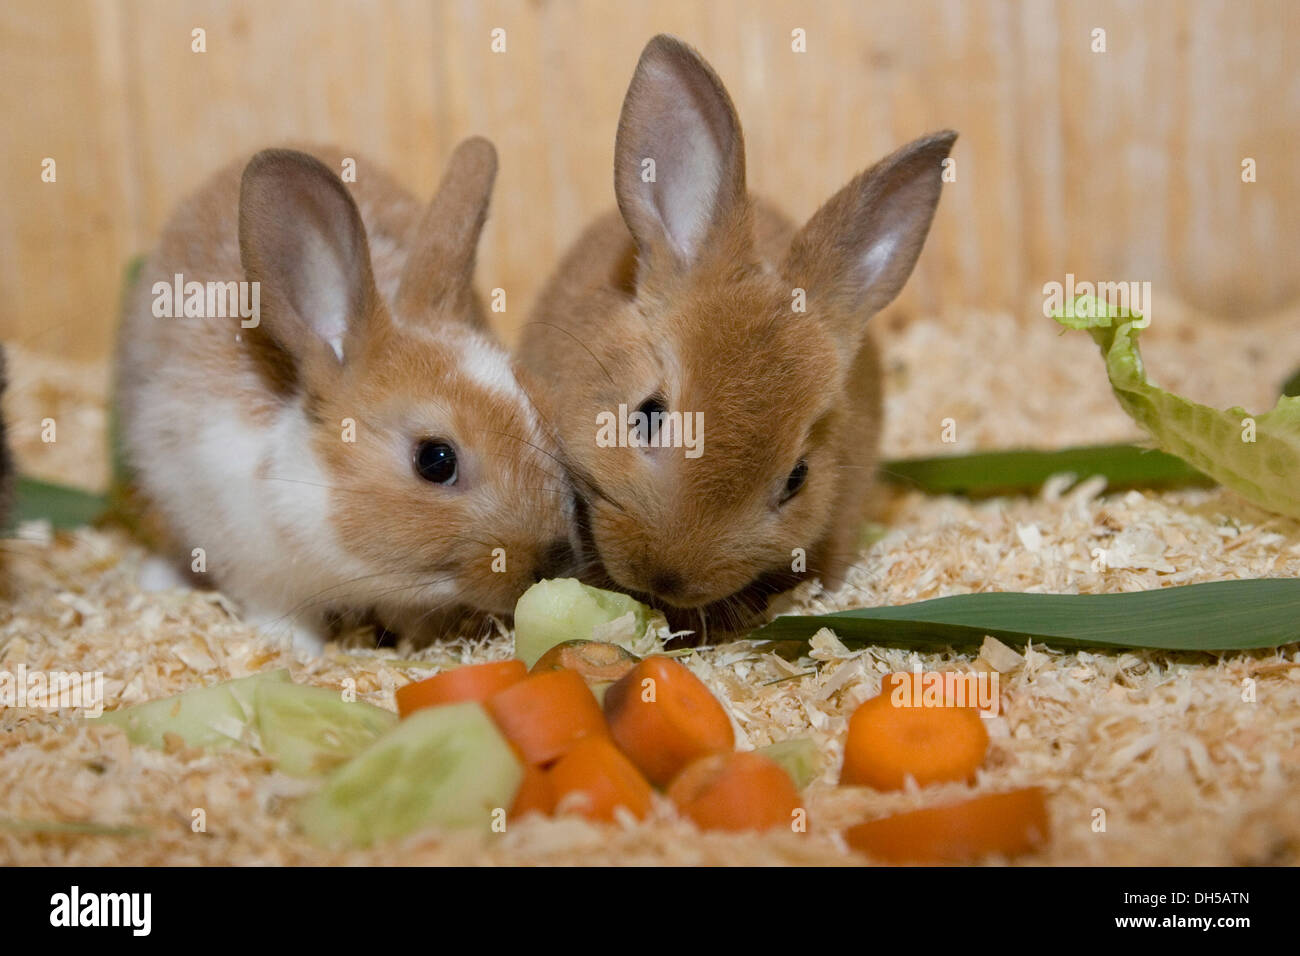 What Do Rabbits Eat And Drink | Complete Diet Guide For Rabbits ...